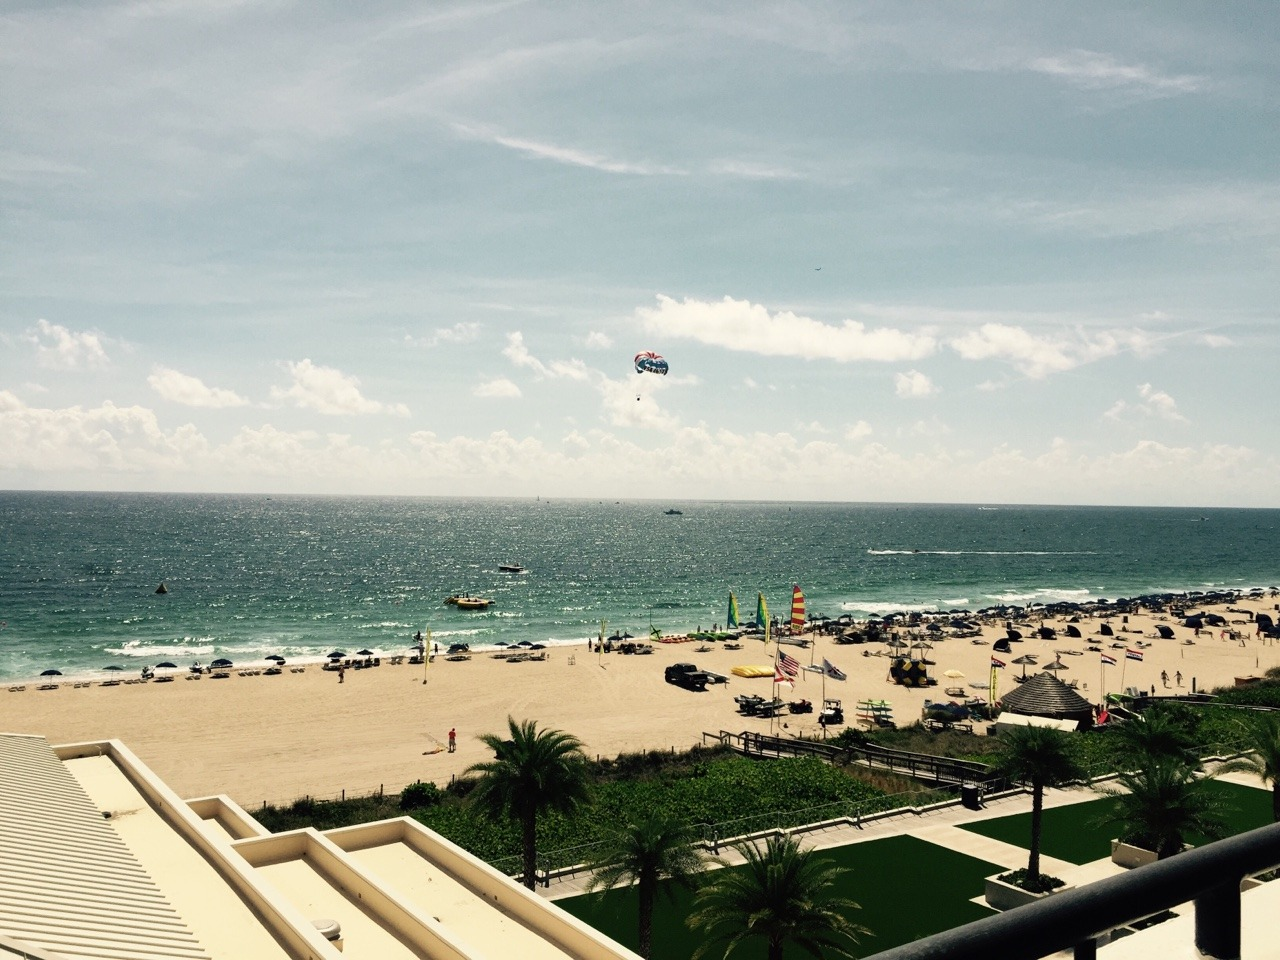 A very humid and hot day in Chicago has me wishing I was back on this beach in Ft. Lauderdale.